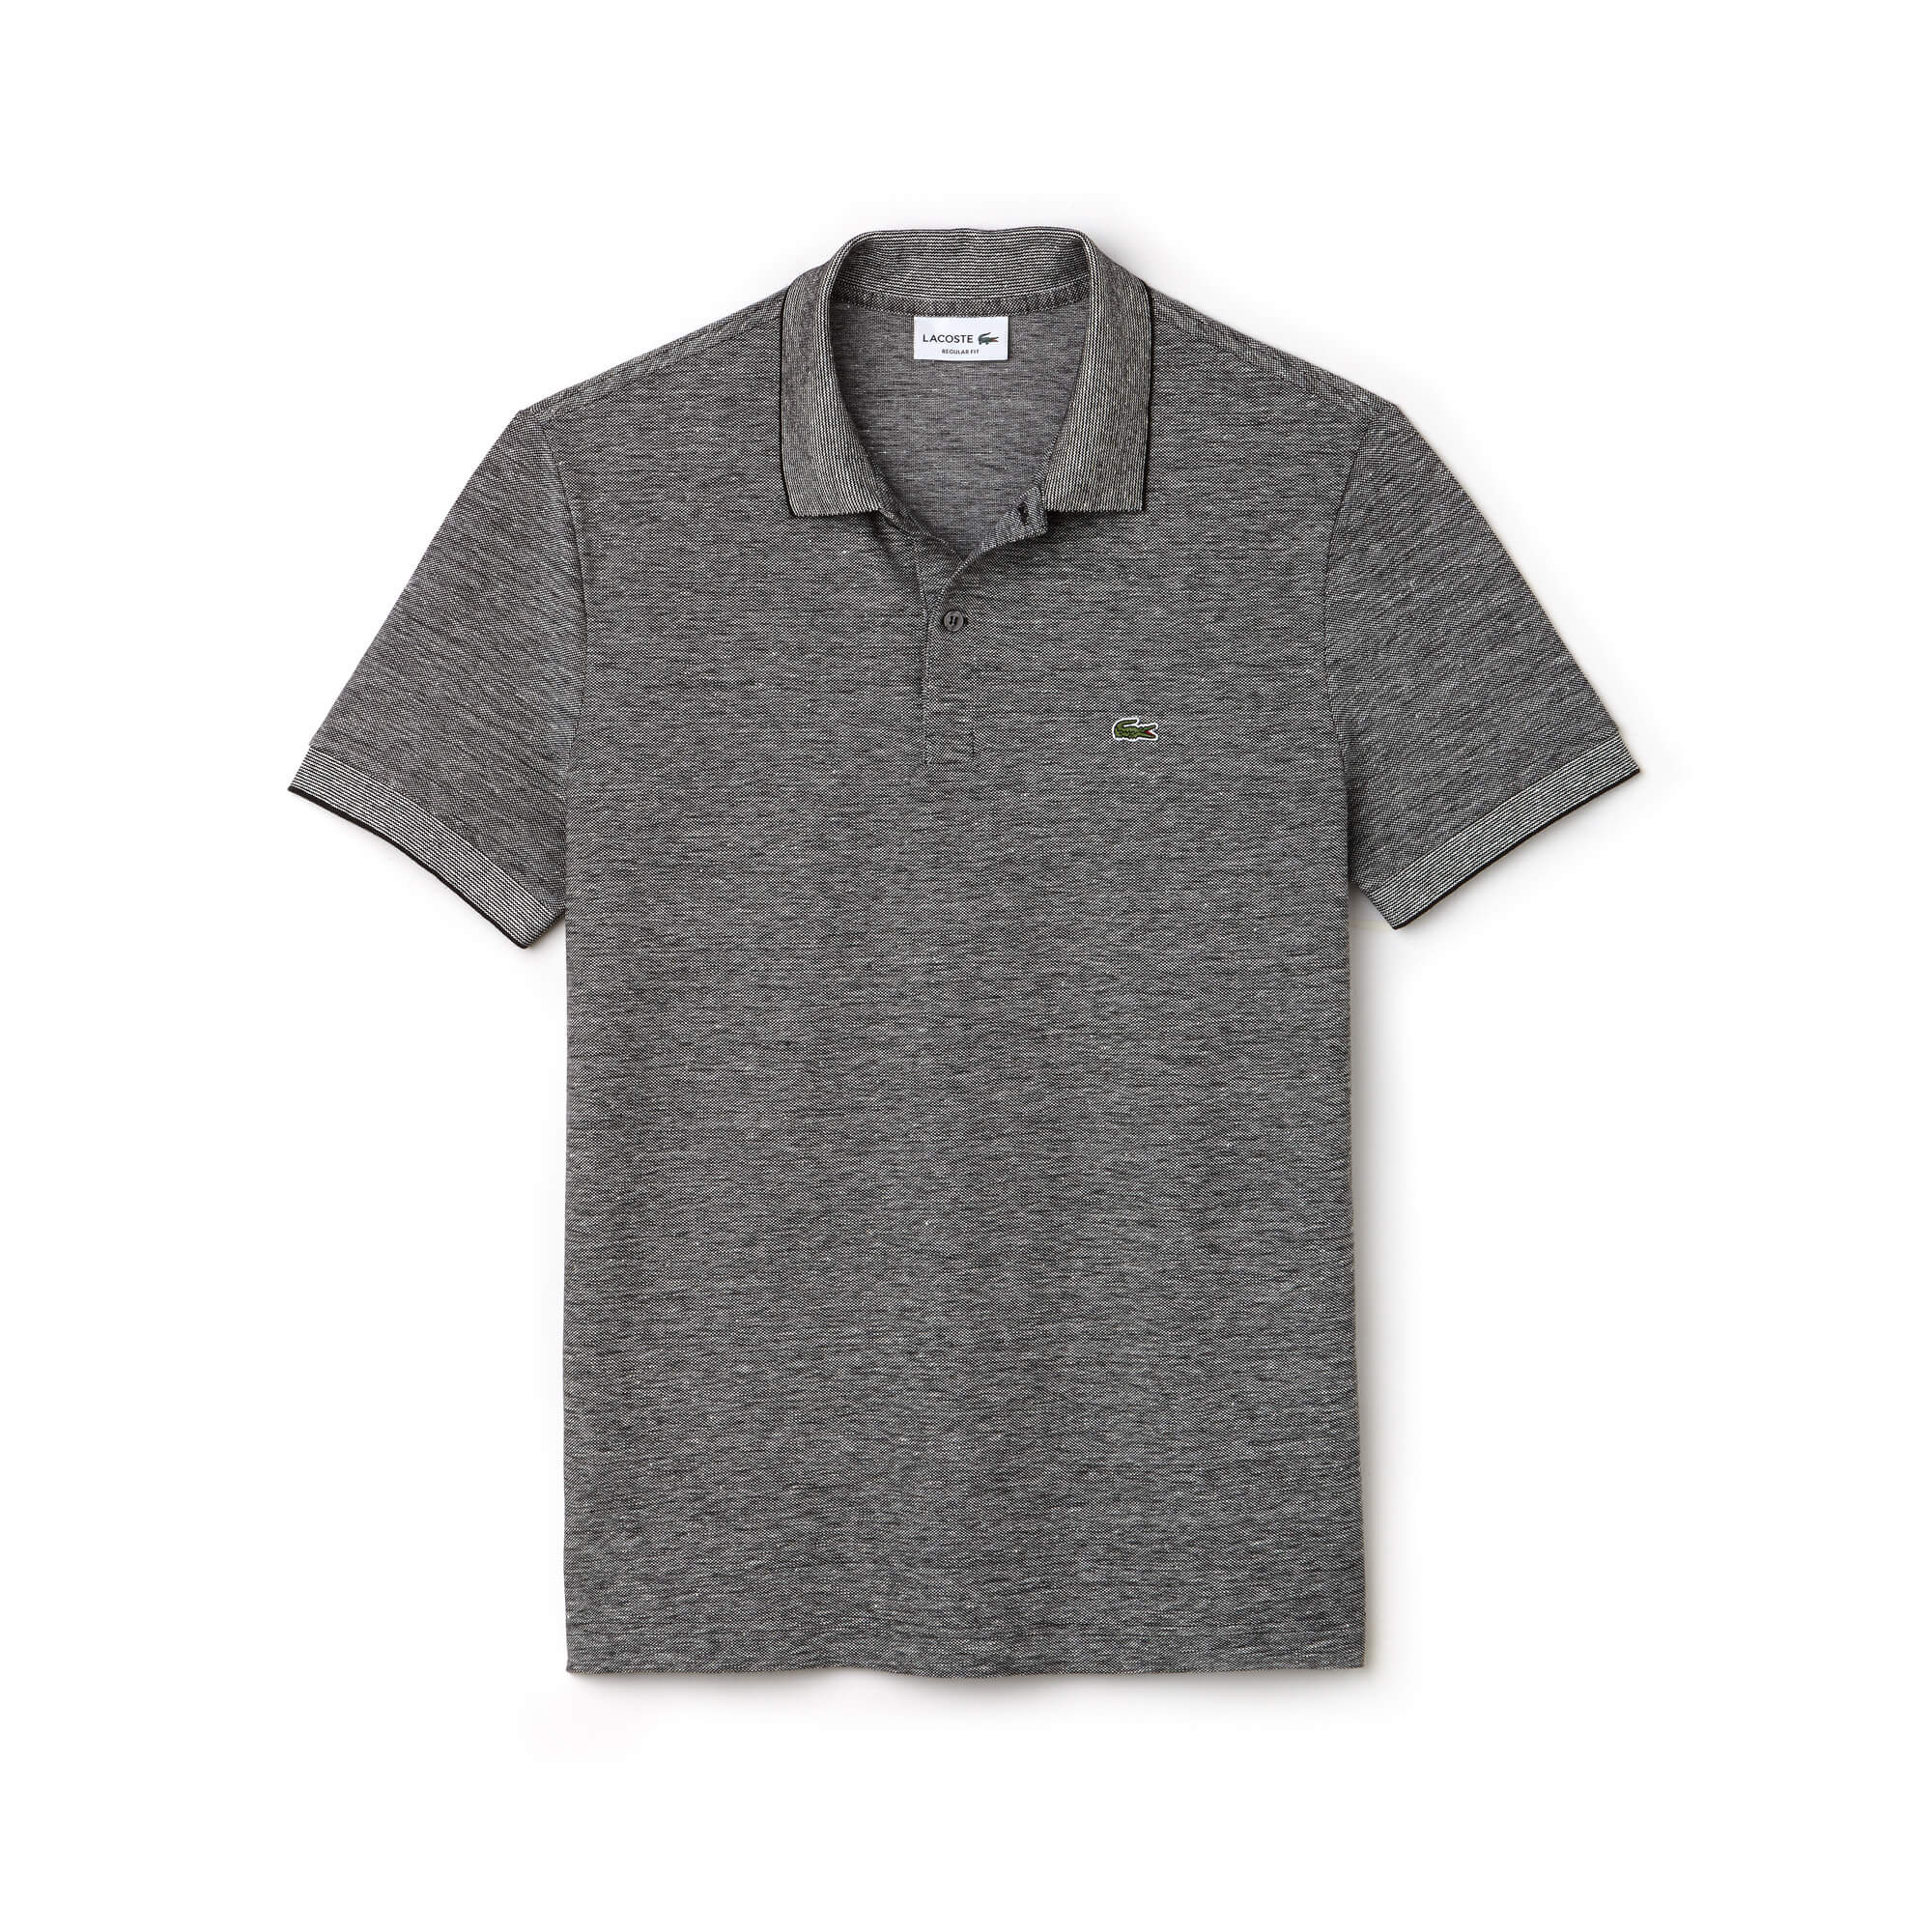 Men's Lacoste Regular Fit Texturized Caviar Piqué Polo Shirt